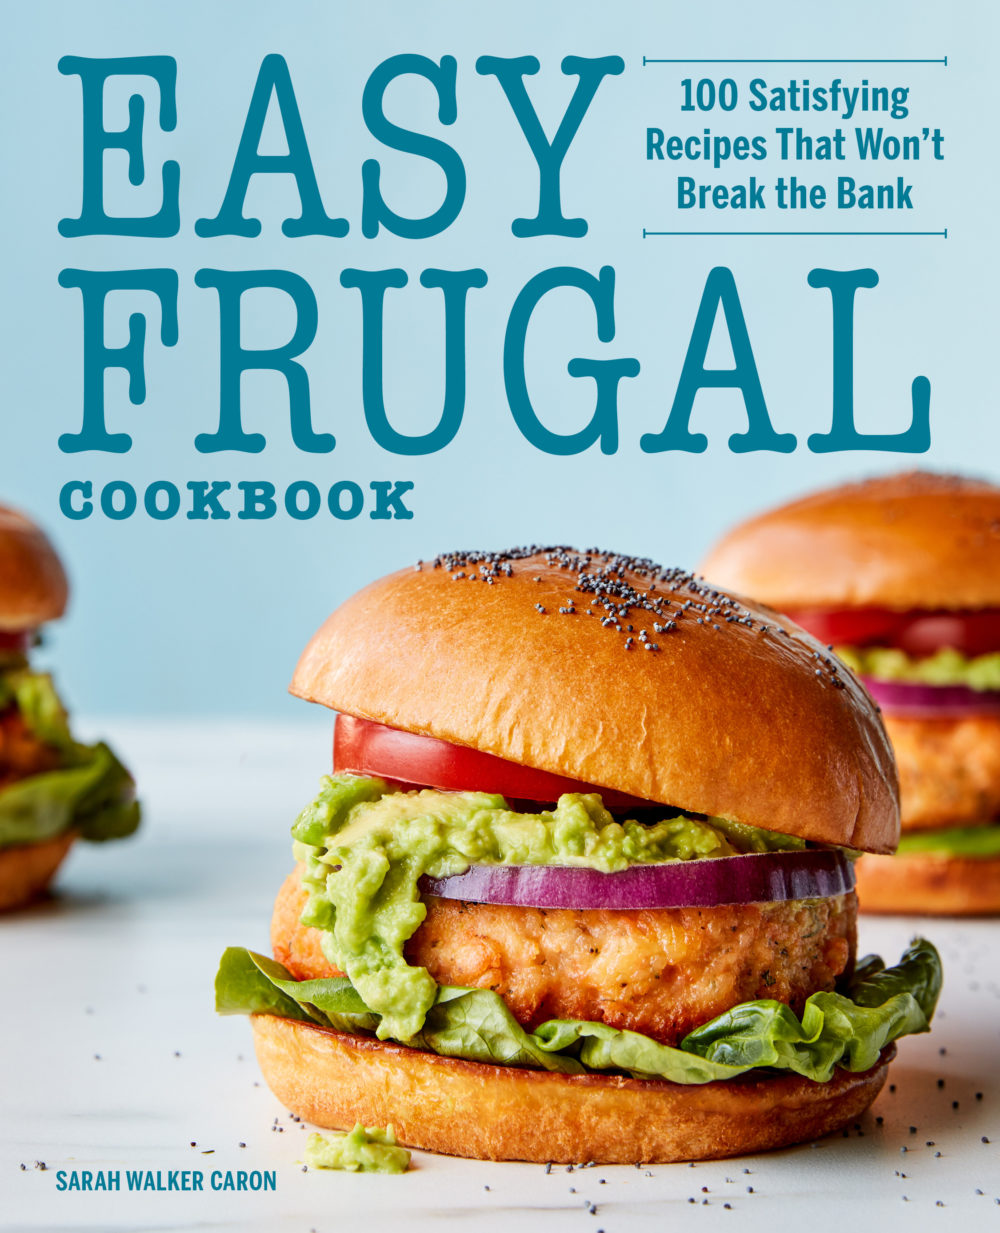 Cover image from Easy Frugal Cookbook, which shows a salmon burger on a poppyseed bun with smashed avocado, red onion, lettuce and tomato.